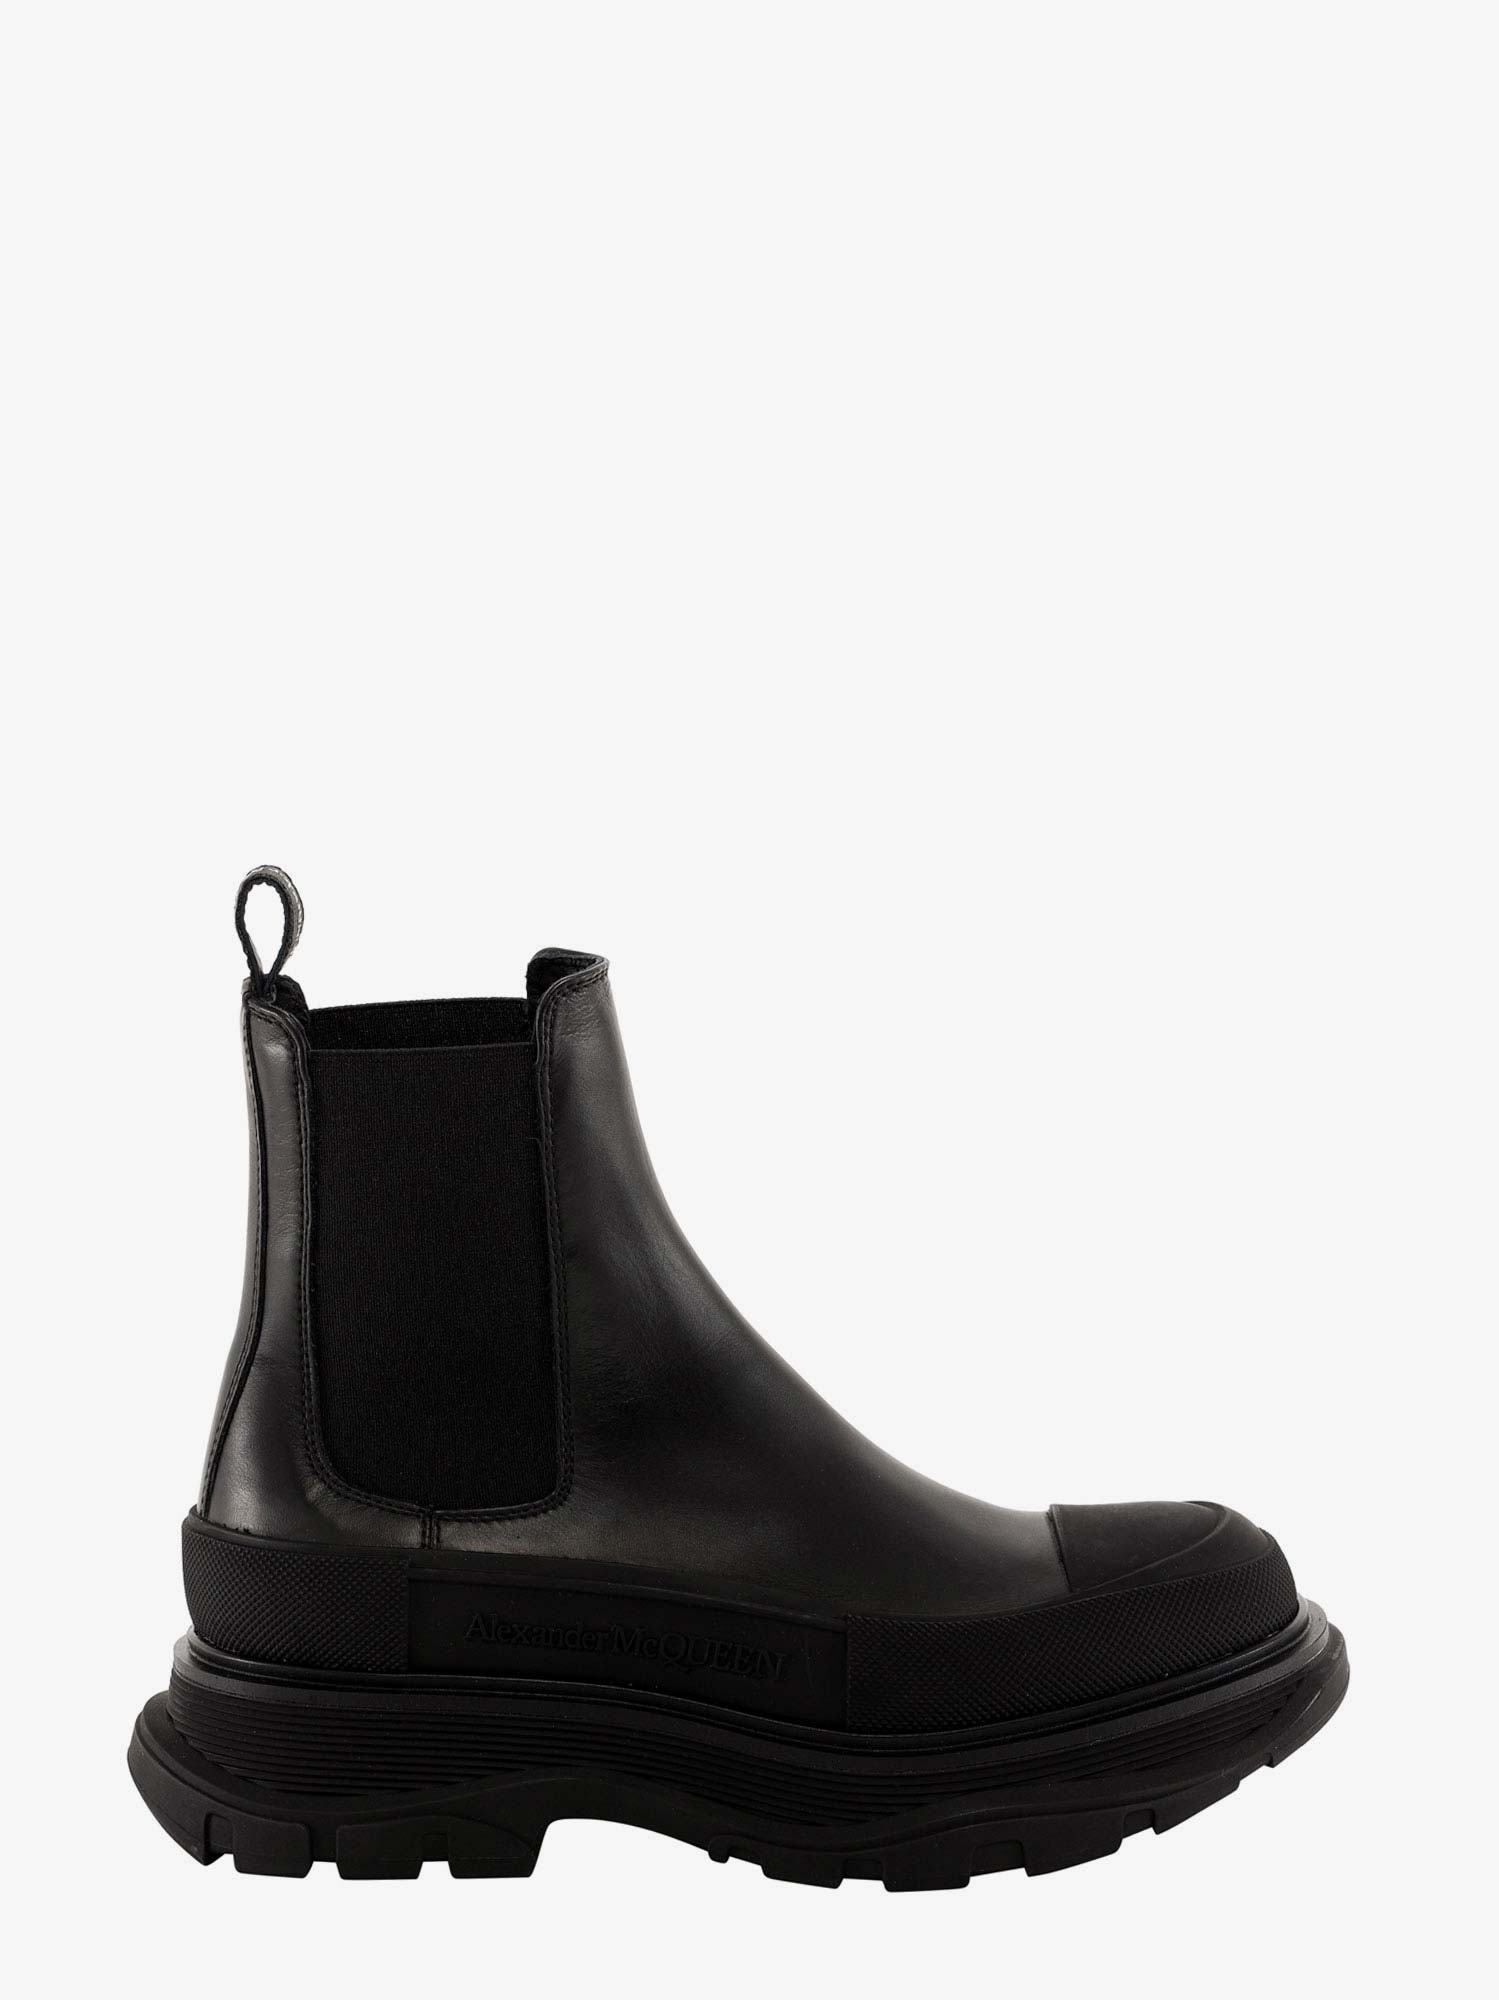 Alexander Mcqueen Leathers BOOTS